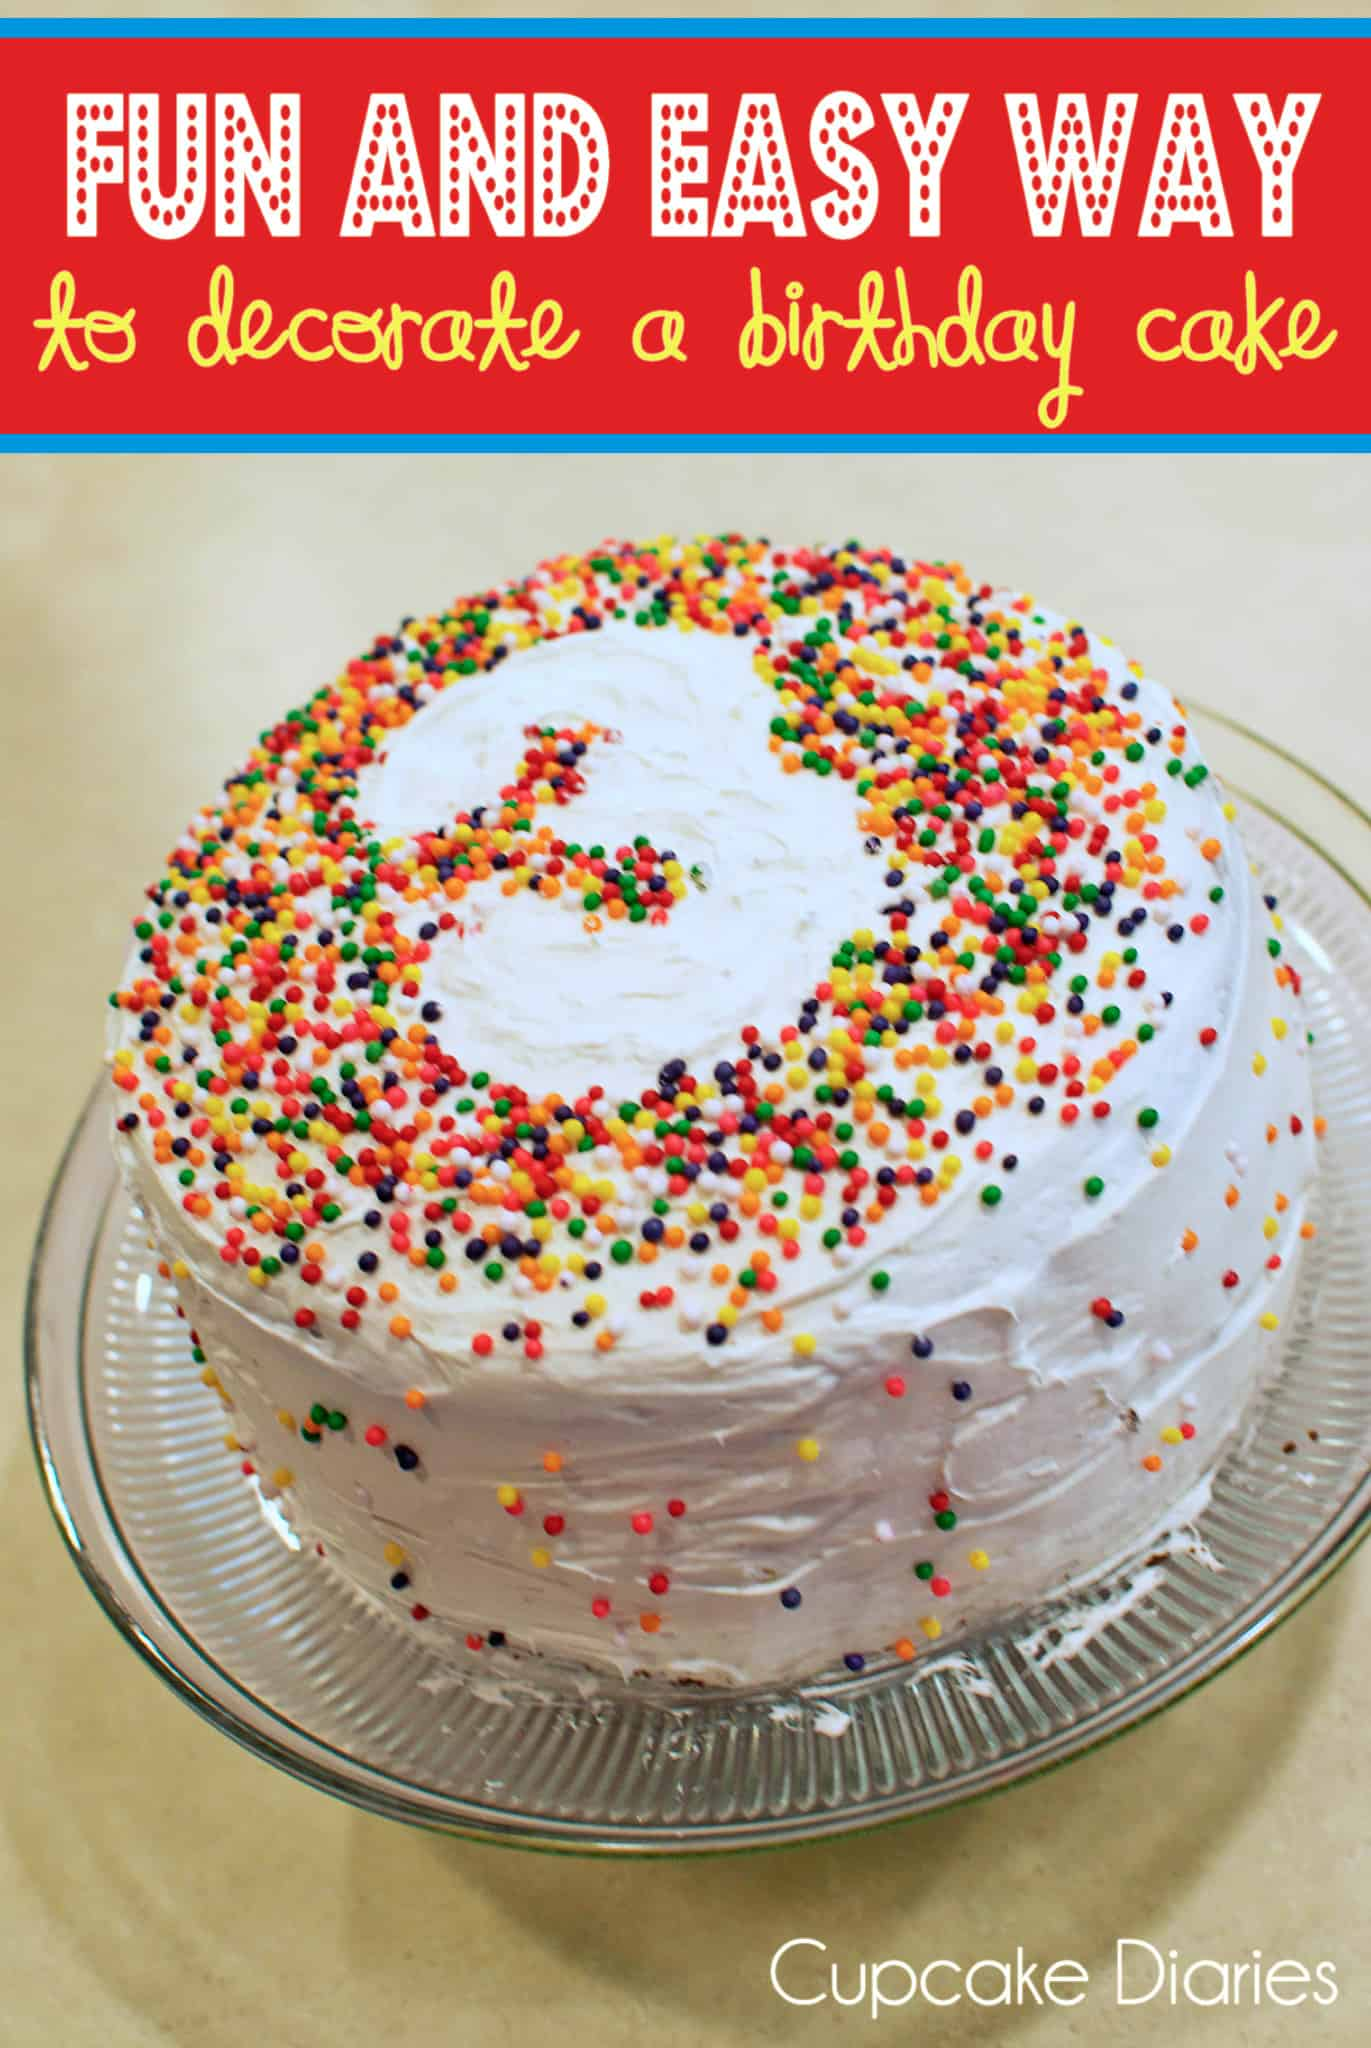 birthday cake decorating ideas and easy way to decorate a birthday cake cupcake diaries 1739